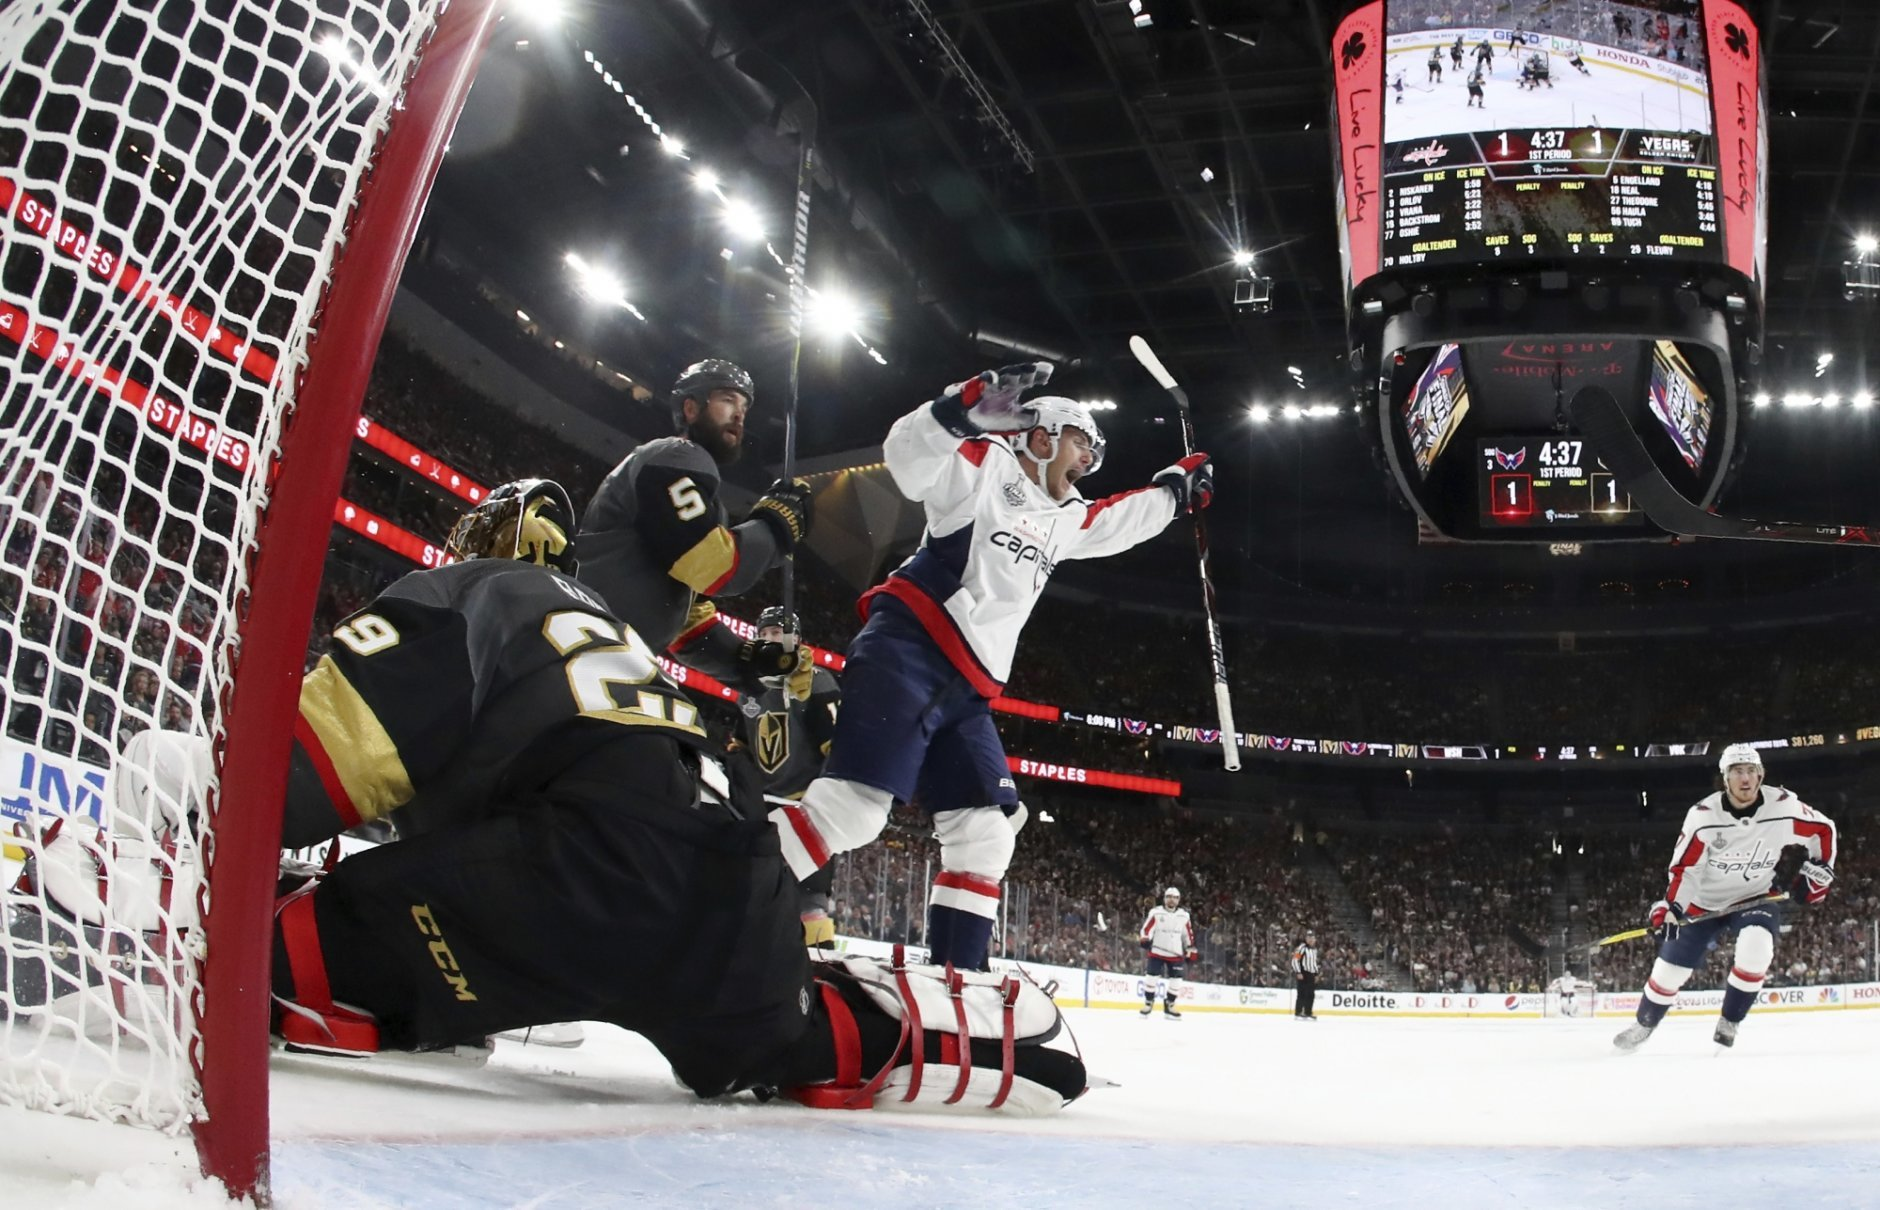 Washington Capitals center Nicklas Backstrom, center, of Sweden, celebrates his goal on Vegas Golden Knights goaltender Marc-Andre Fleury, left, during first period in Game 1 of the NHL hockey Stanley Cup Finals Monday, May 28, 2018, in Las Vegas. (Harry How/Pool via AP)